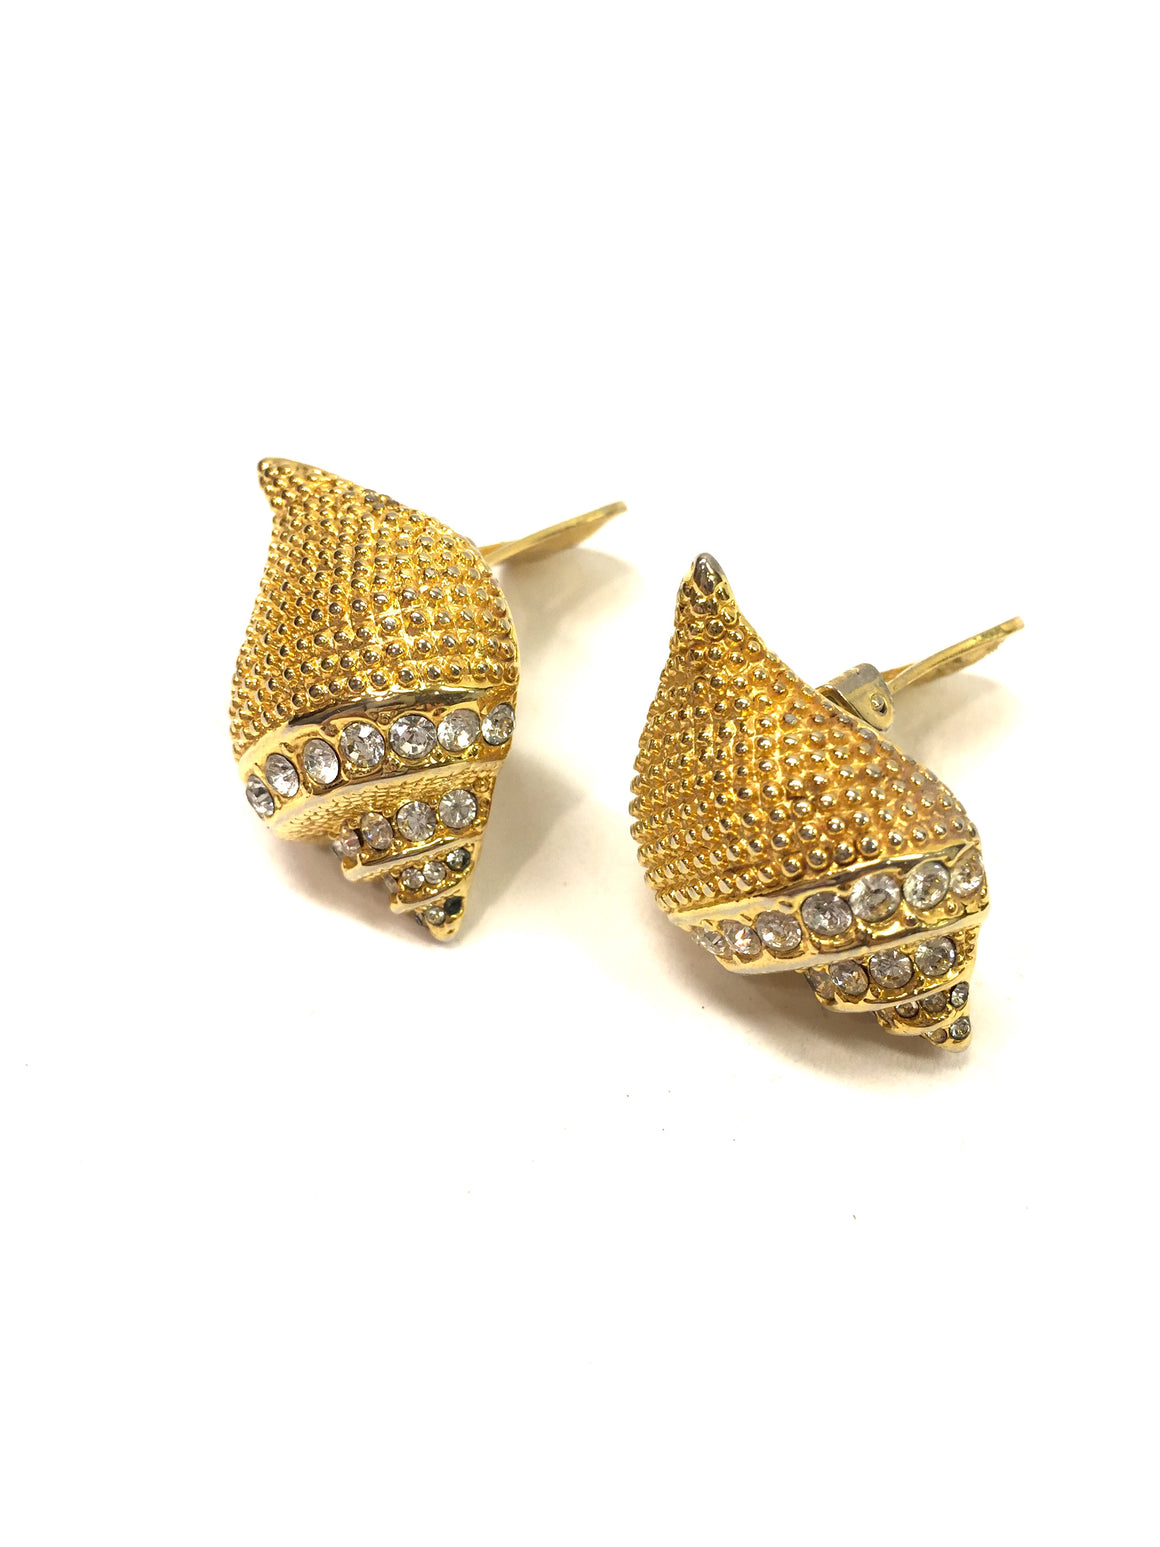 KENNETH J. LANE -KJL- Goldtone Seashell Crystal Trim Clip-On Earrings